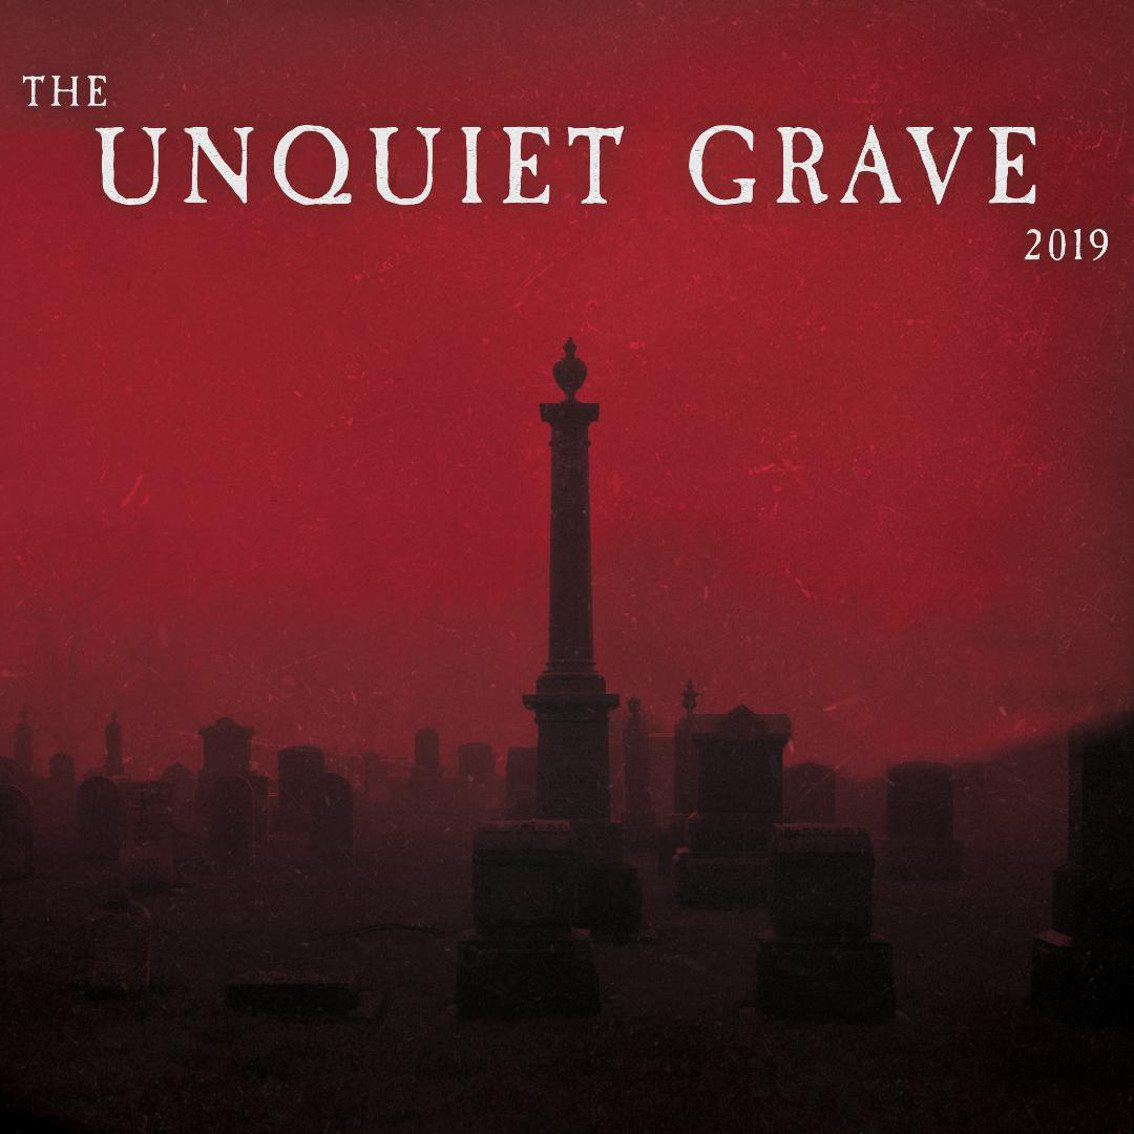 Cleopatra Records to release 'The Unquiet Grave 2019' compilation